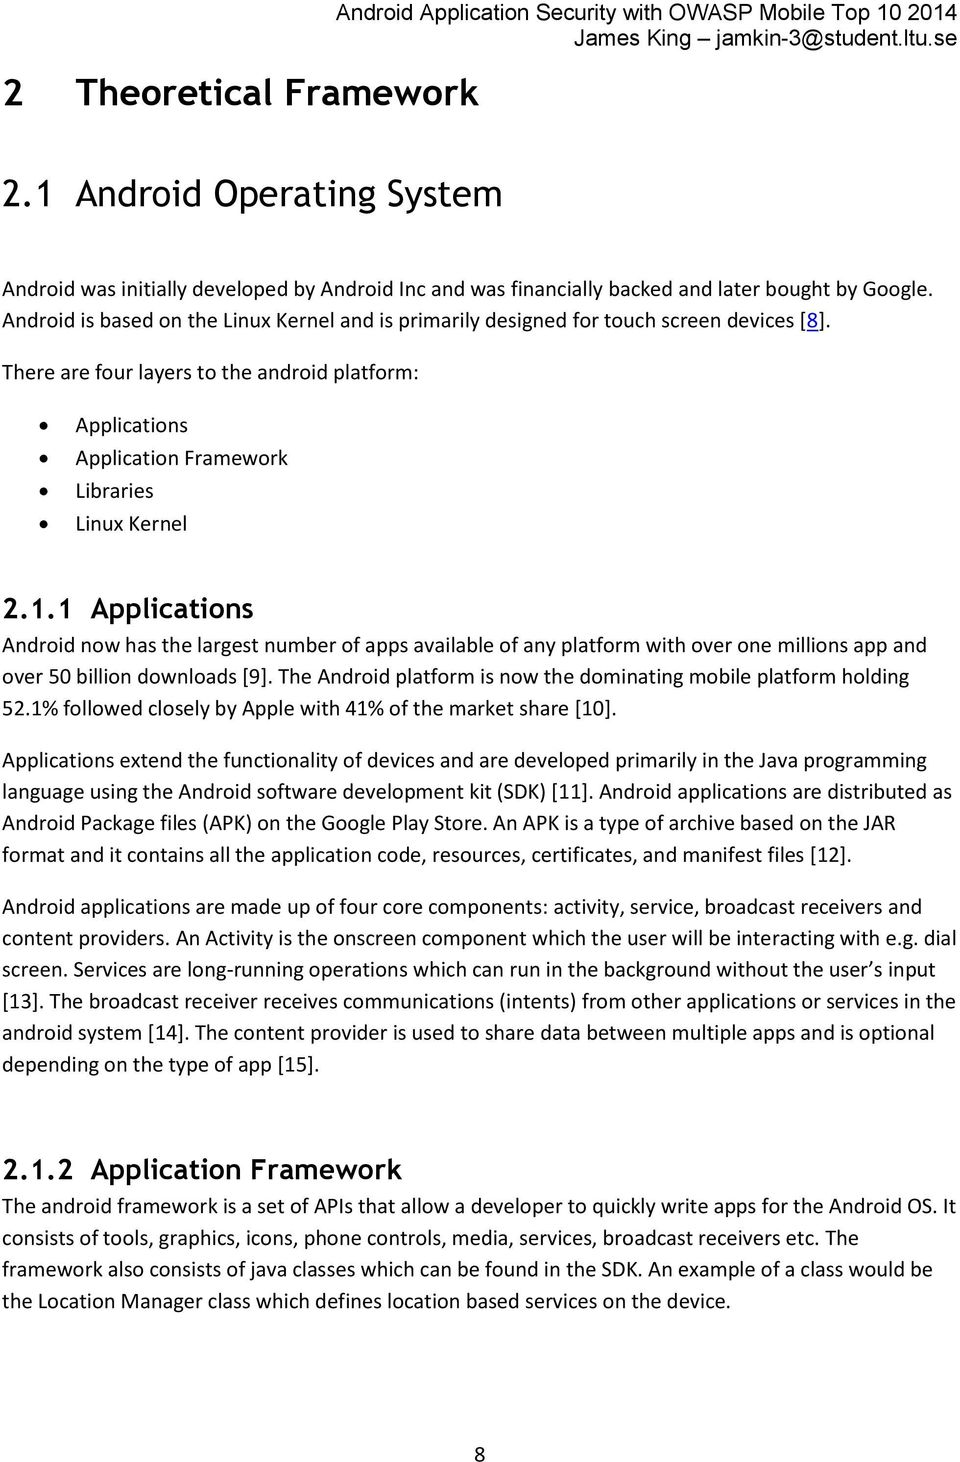 MASTER'S THESIS  Android Application Security with OWASP Mobile Top